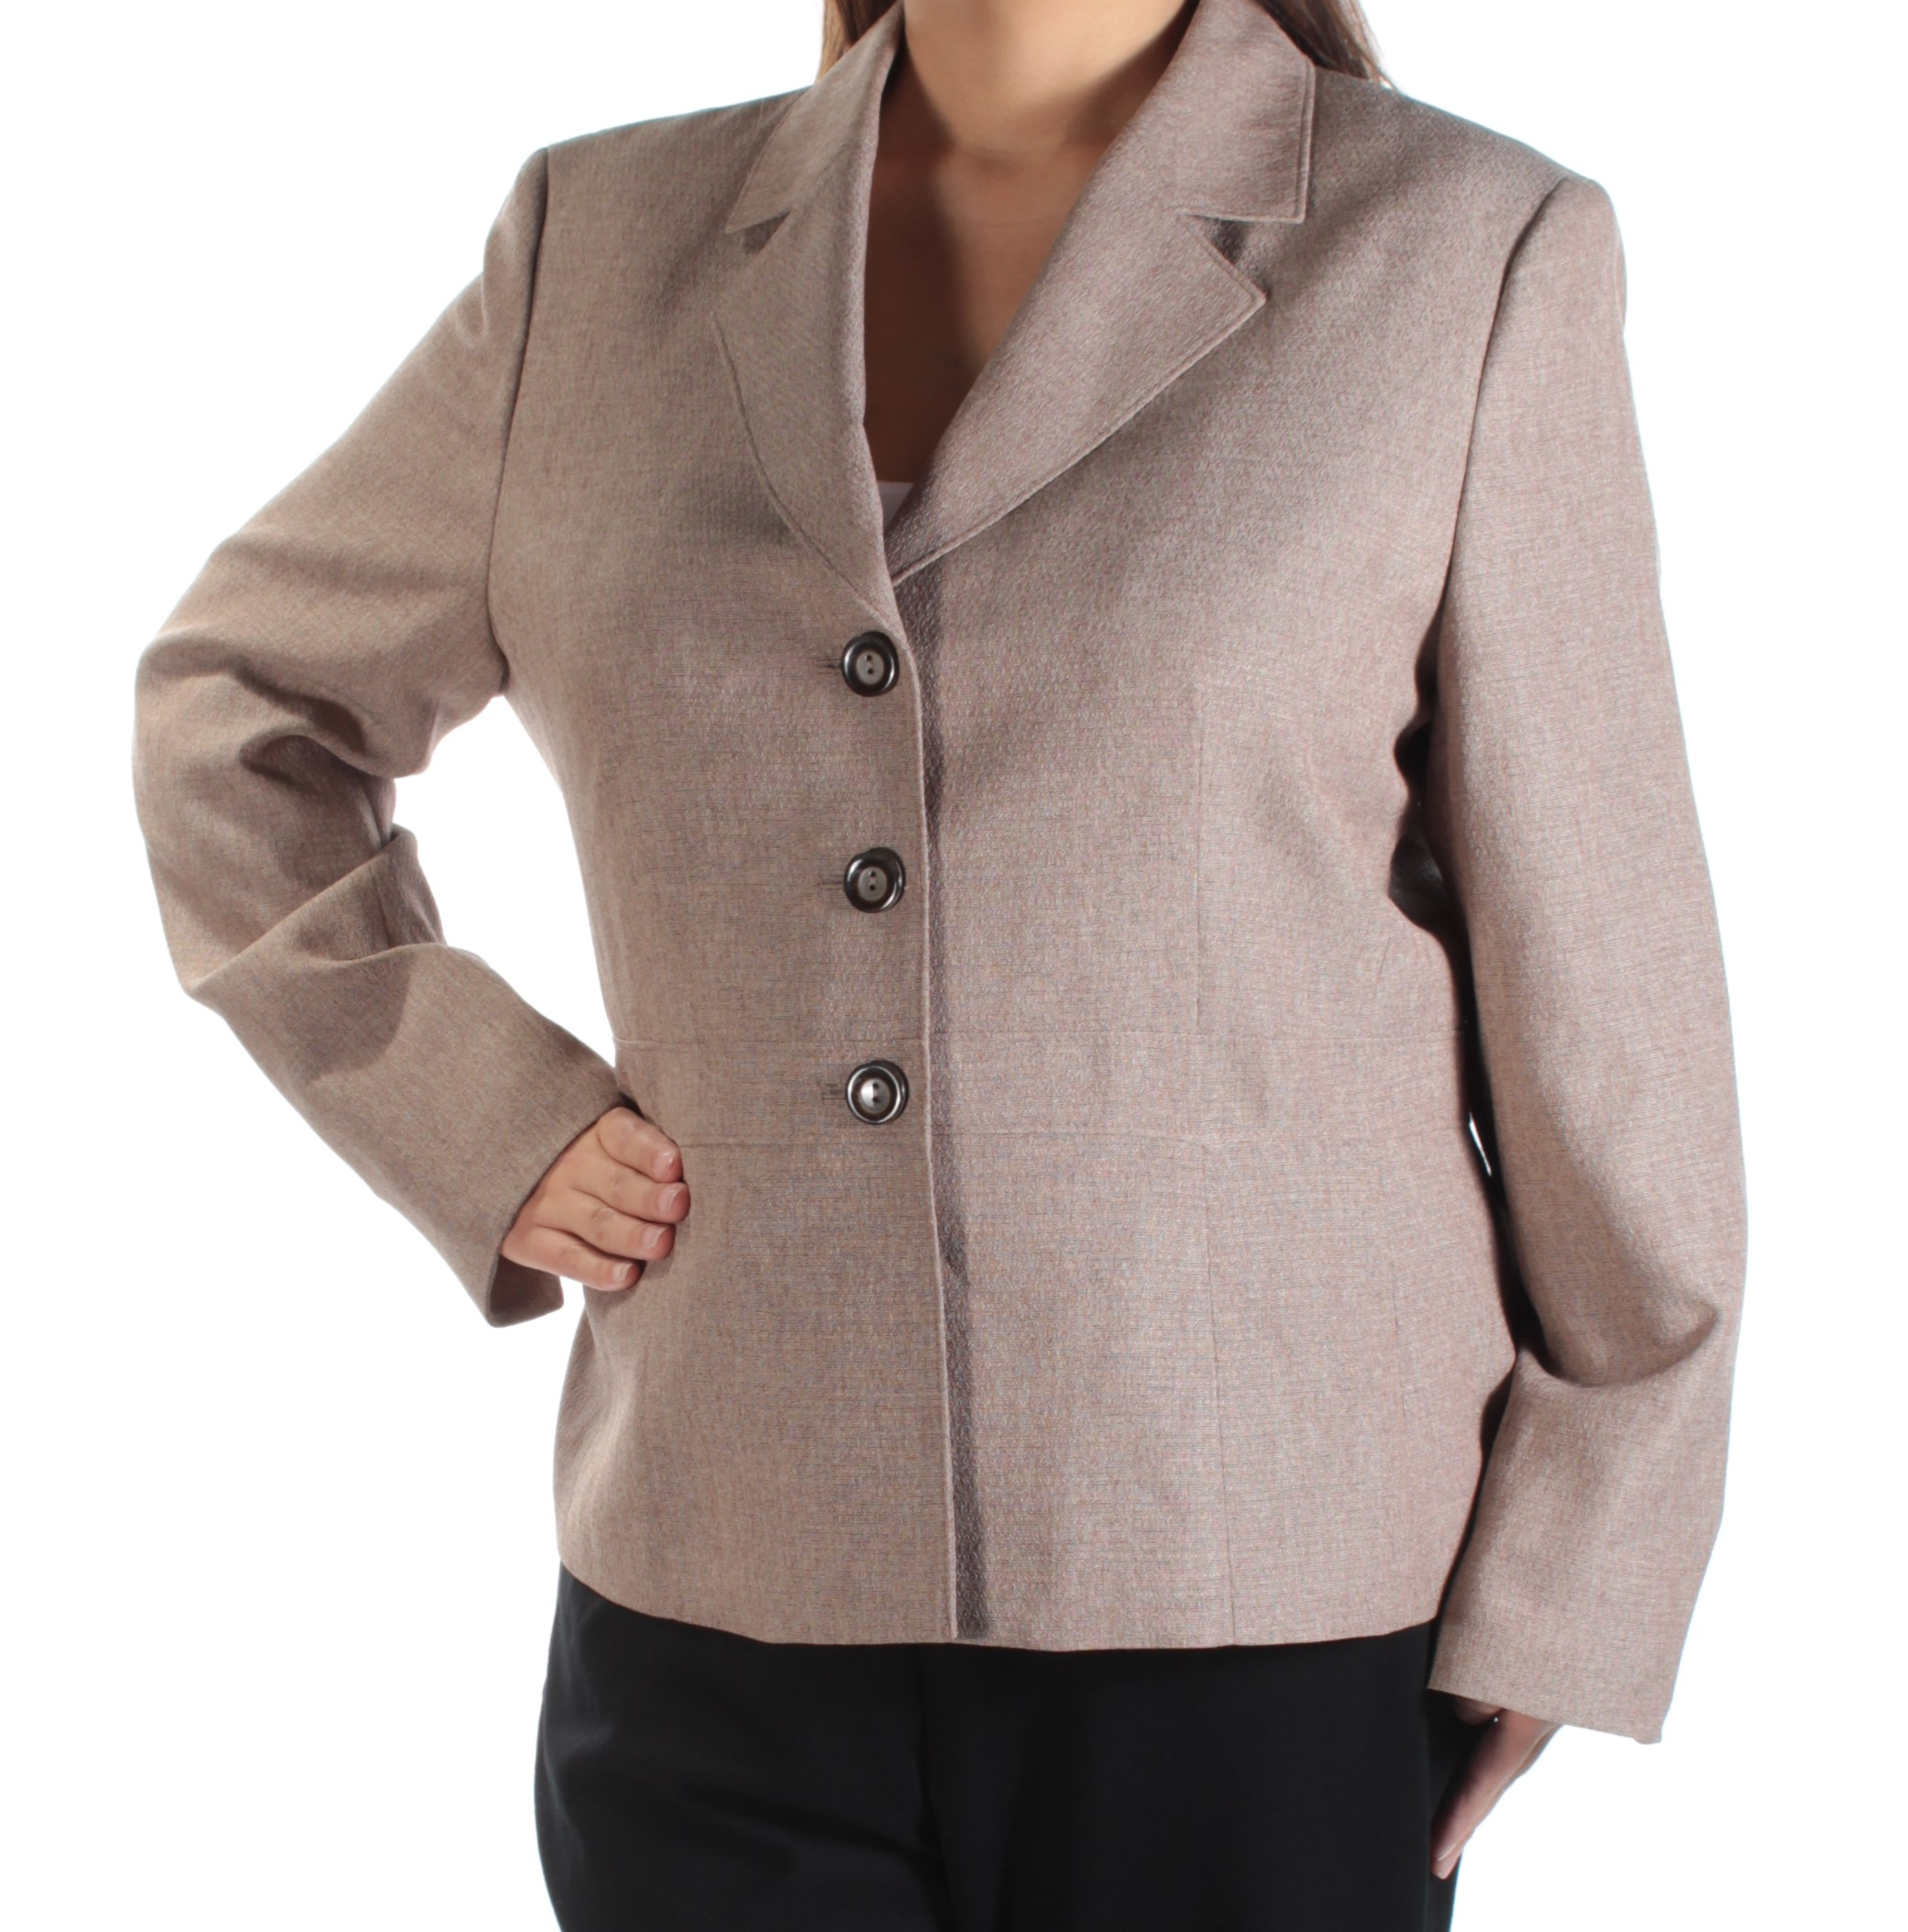 LE SUIT Womens Brown Blazer Wear To Work Jacket  Size: 18